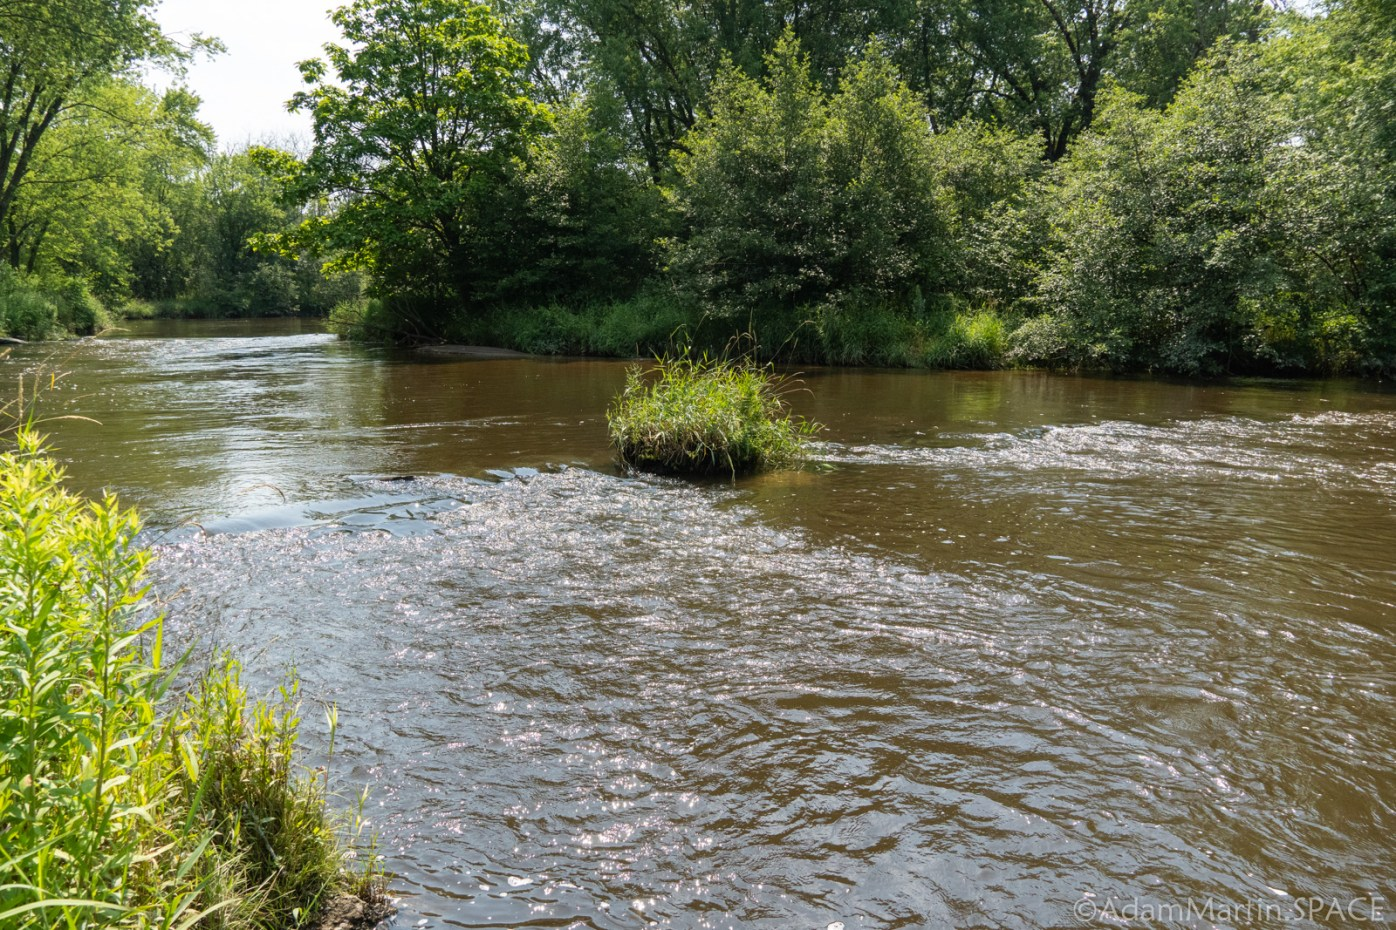 Amundson Park - Small ripples in river upstream of falls